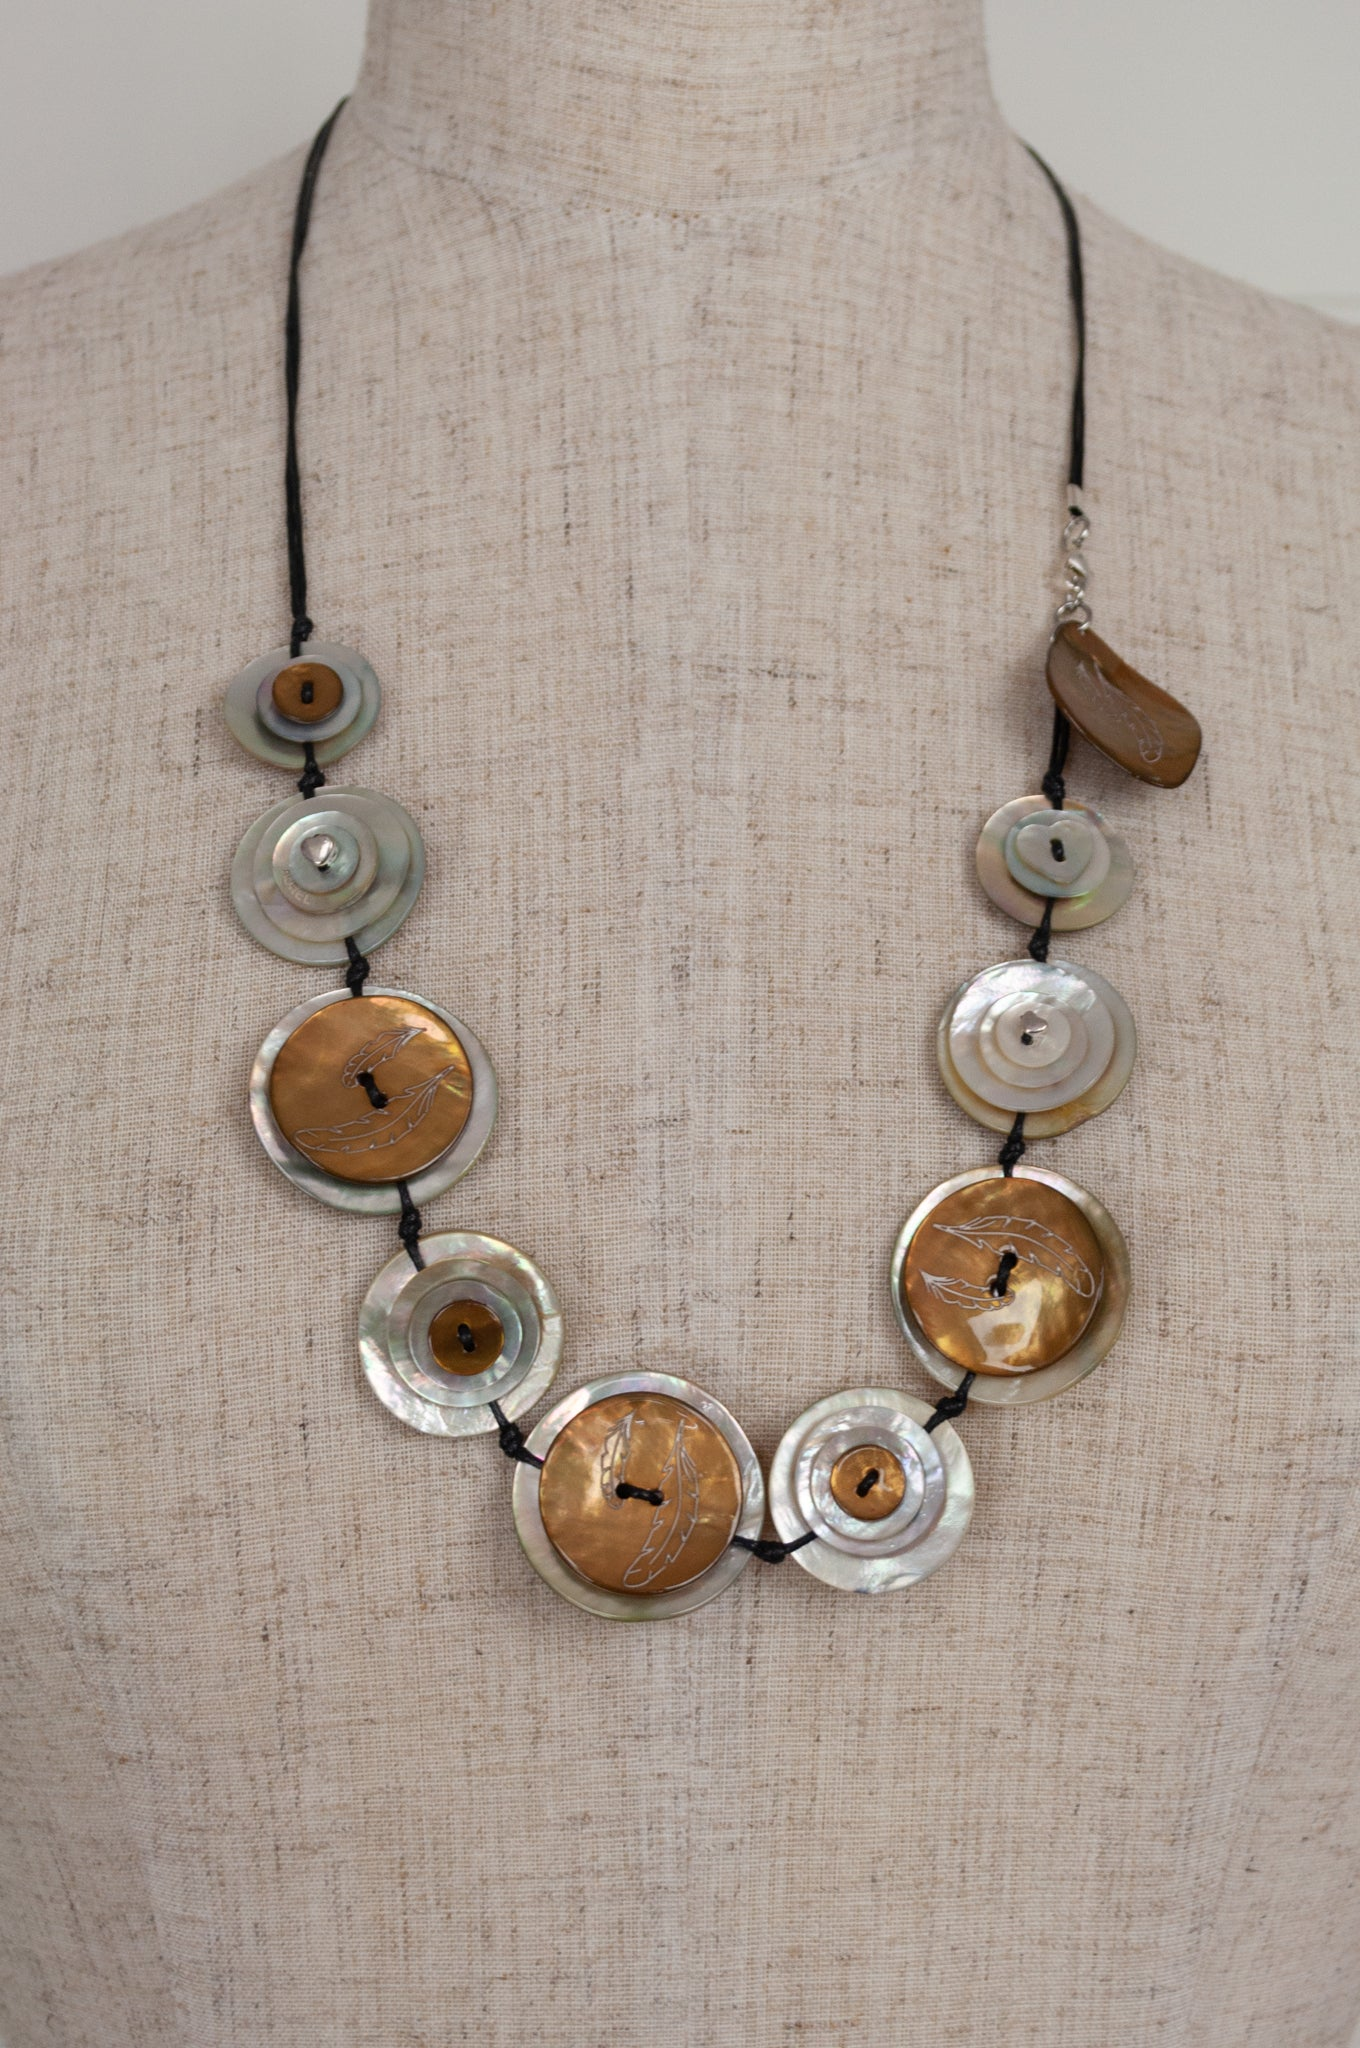 Aurel Création Attrap-rêve long shell button nacre mother of pearl necklace, hand made and engraved in France, in natural beige and white.